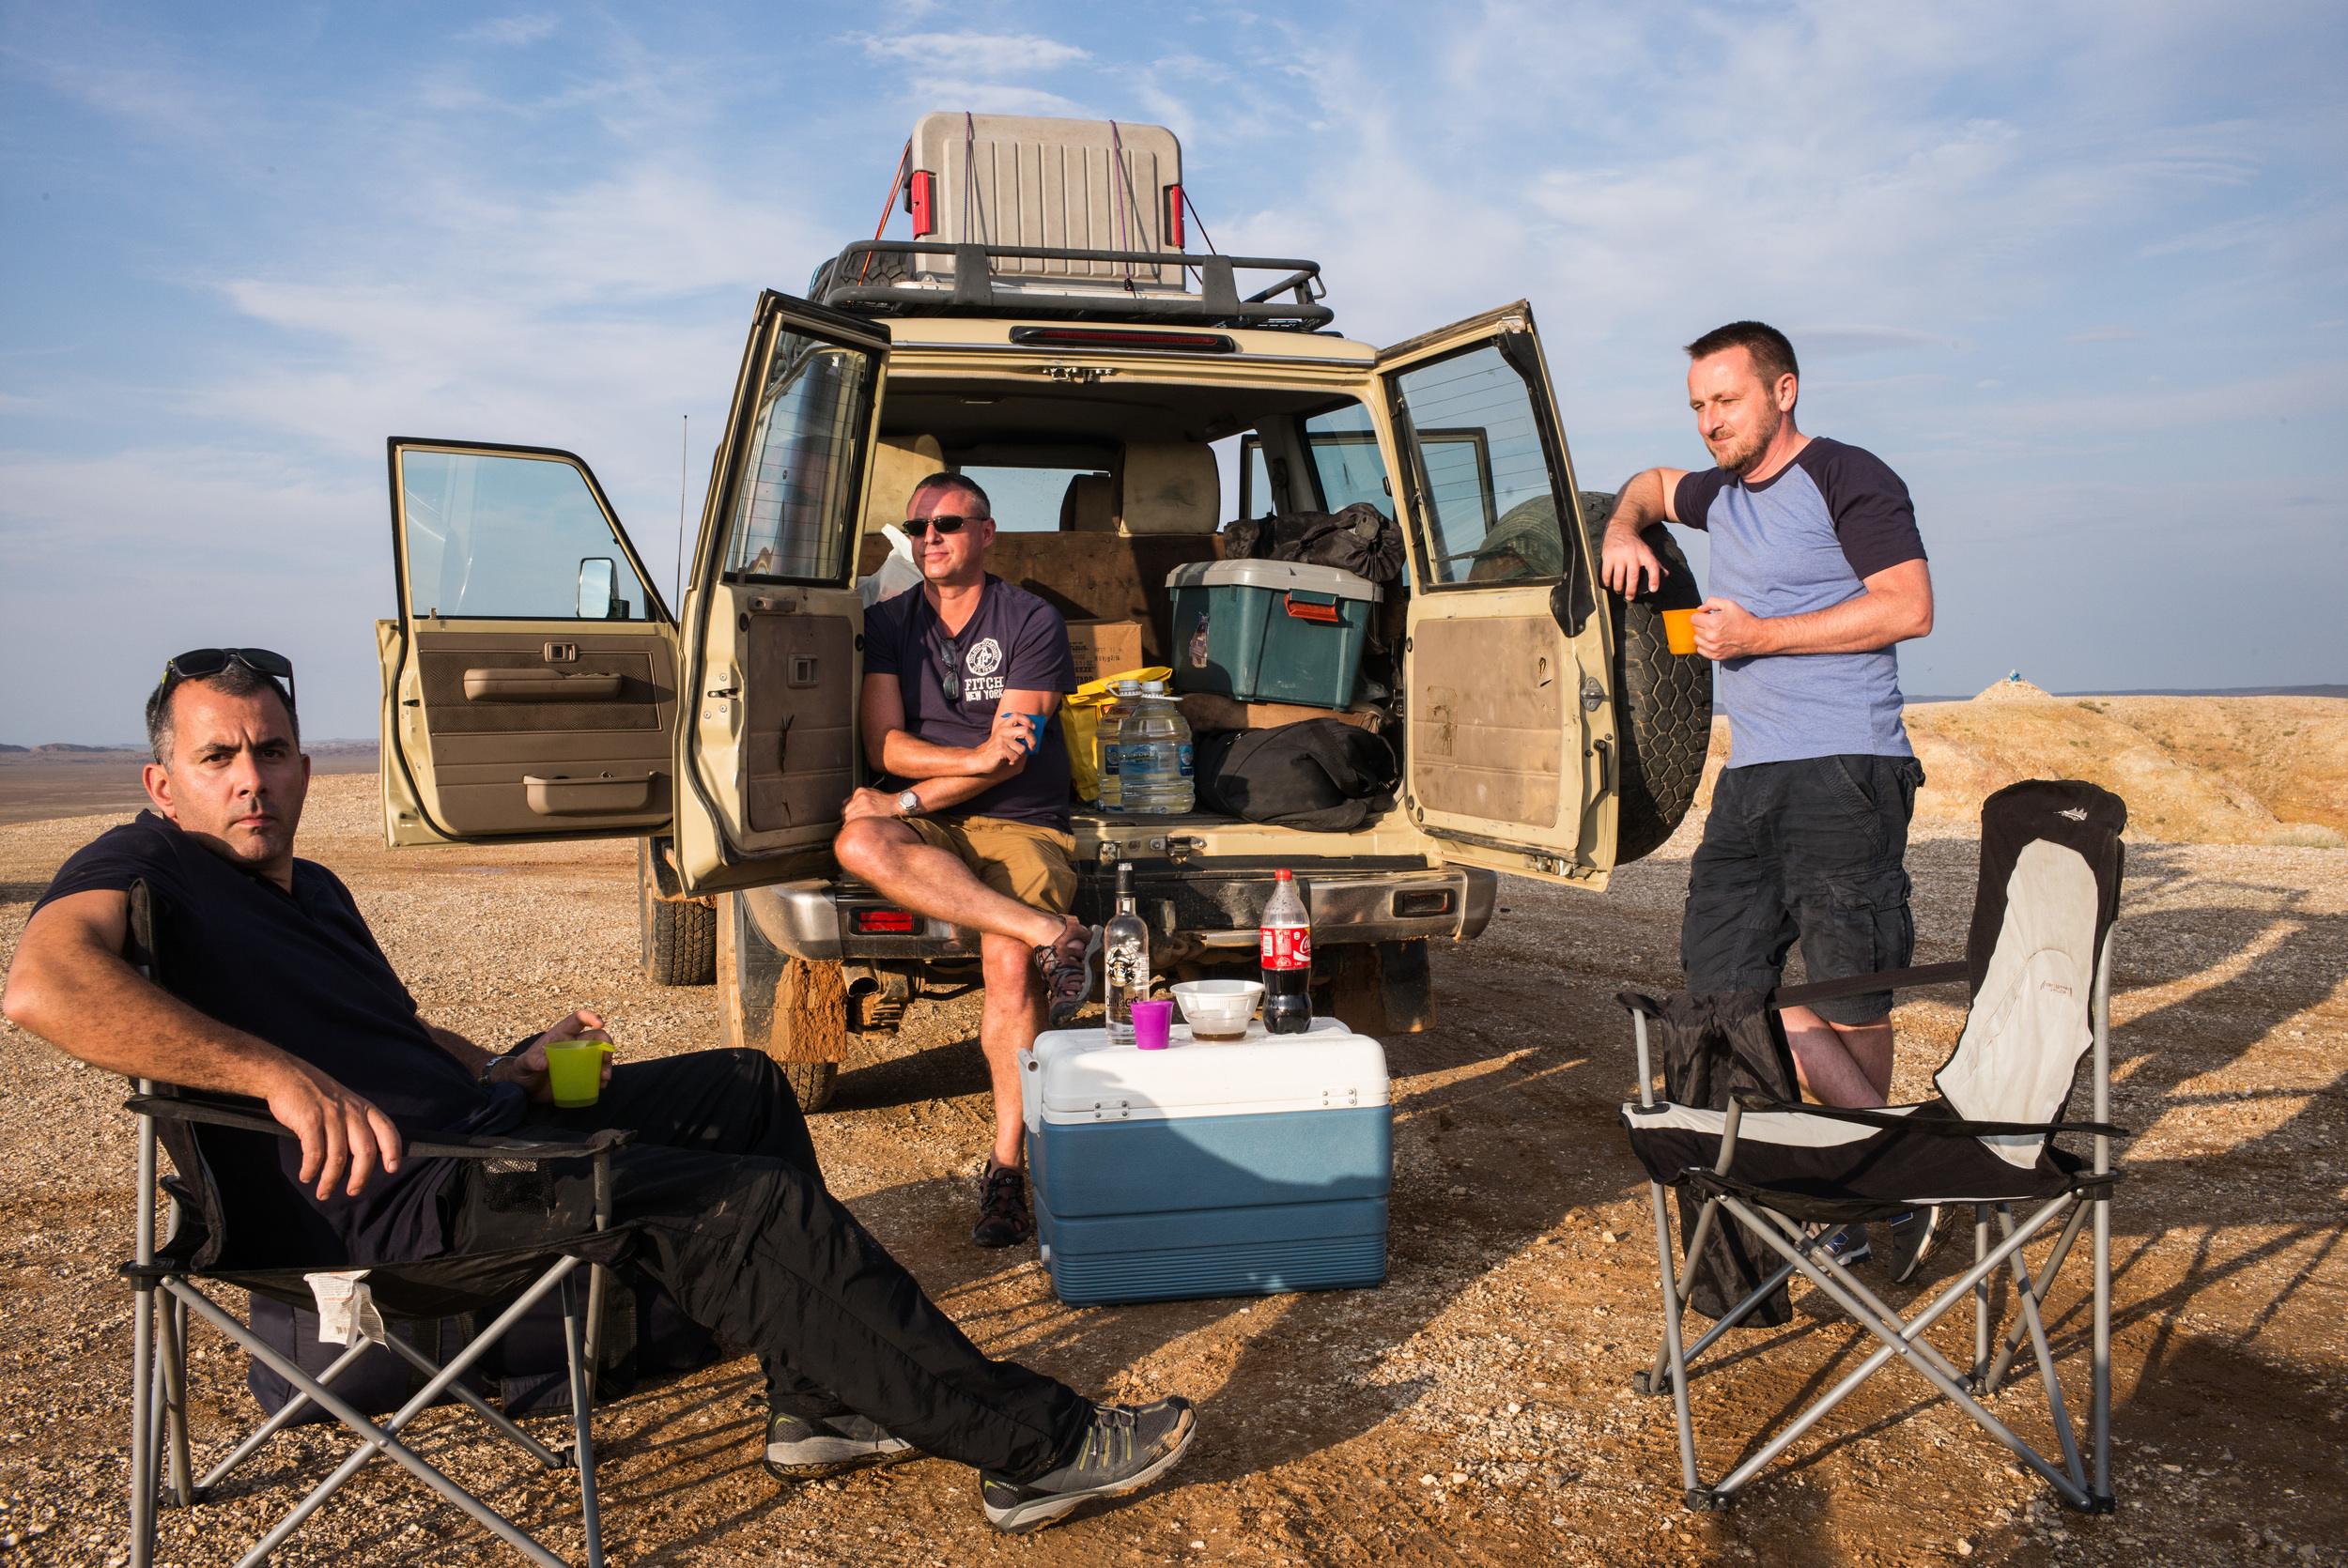 'Drive Mongolia did a great job ! They collected us from the airport, gave us an indestructible Toyota Land Cruiser complete with camping gear and helped us plan our amazing trip across Mongolia', mark hughes, england